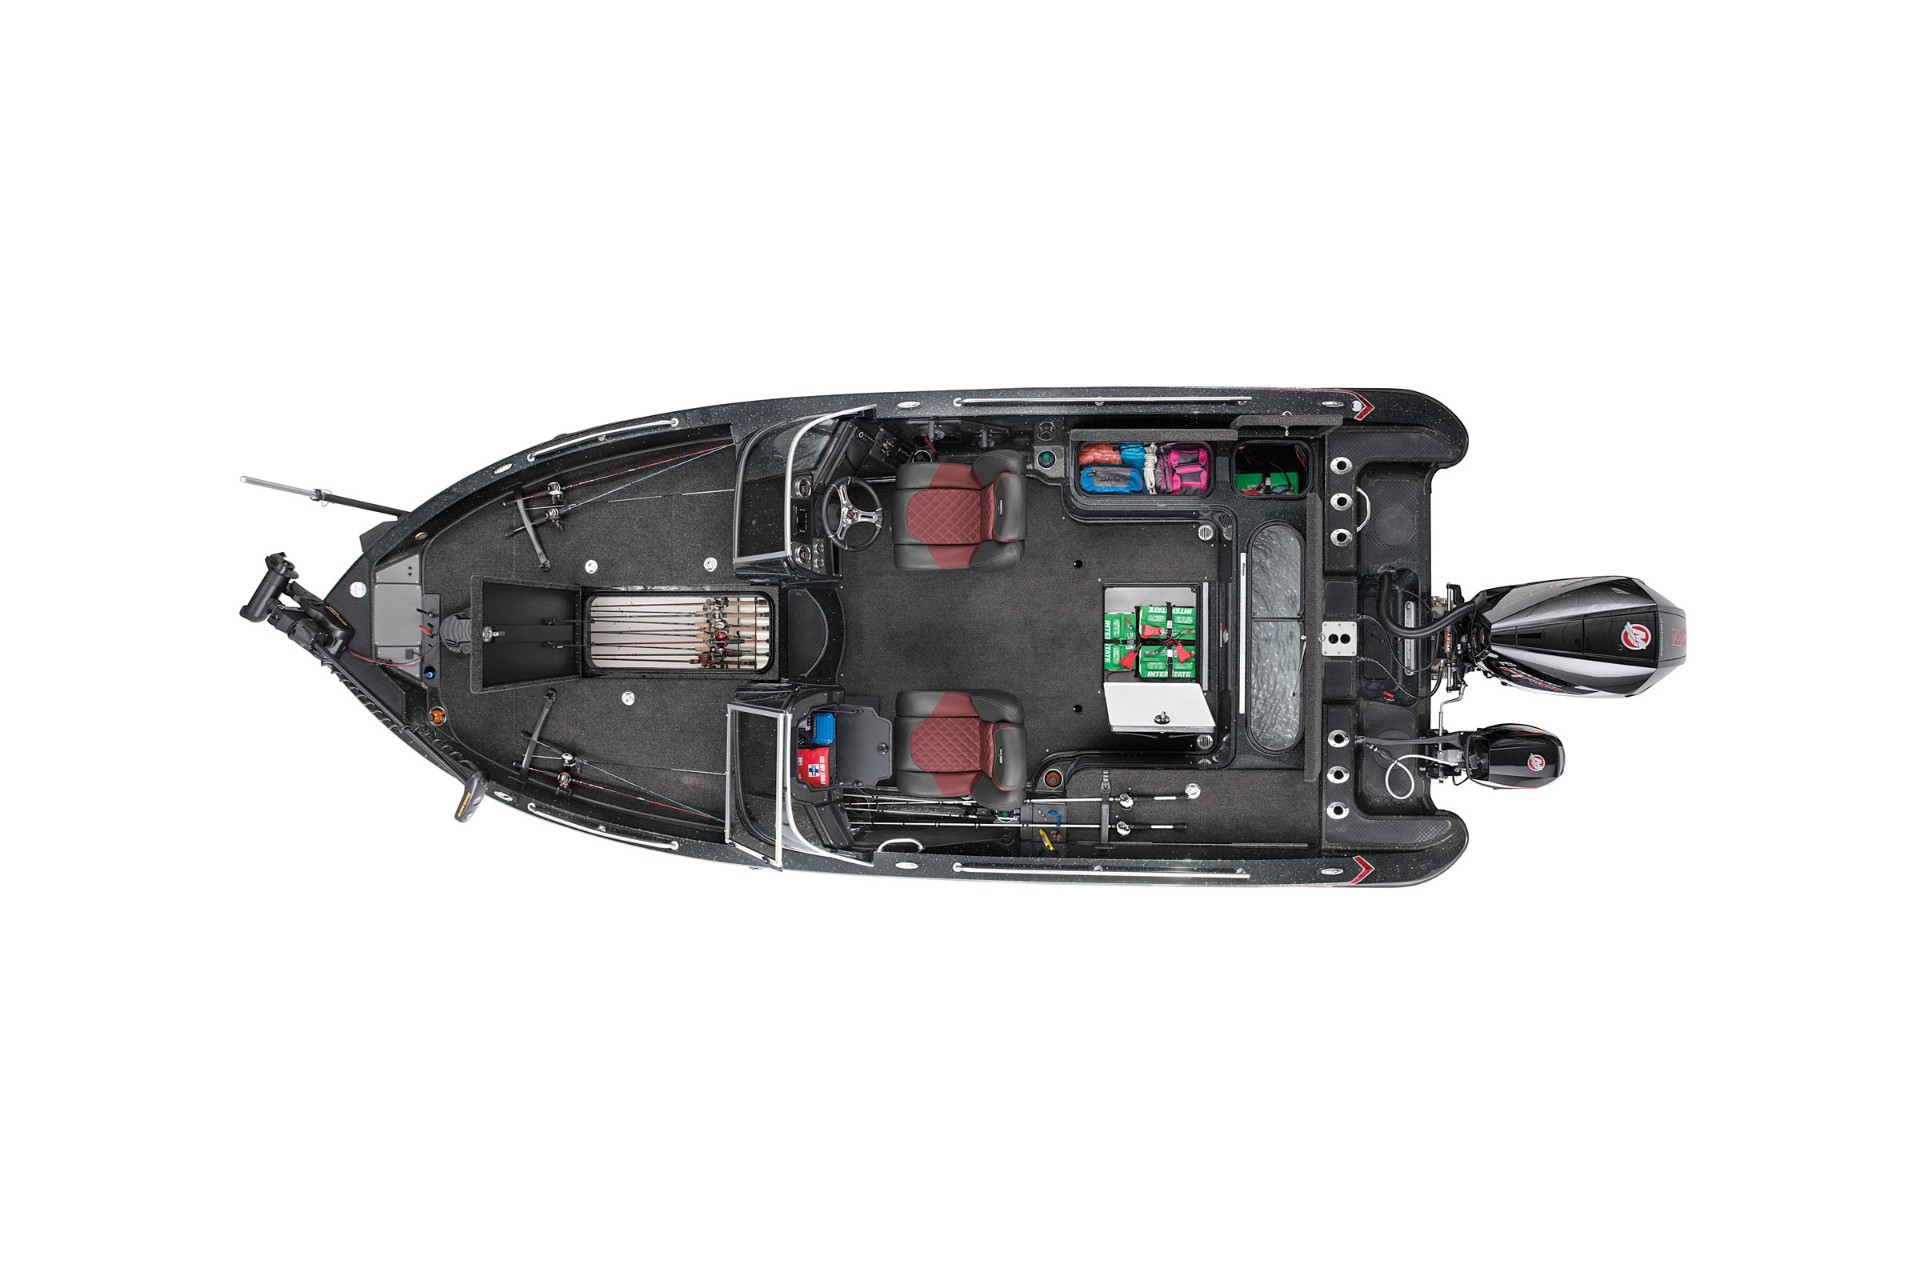 Triton 206 Fish Hunter